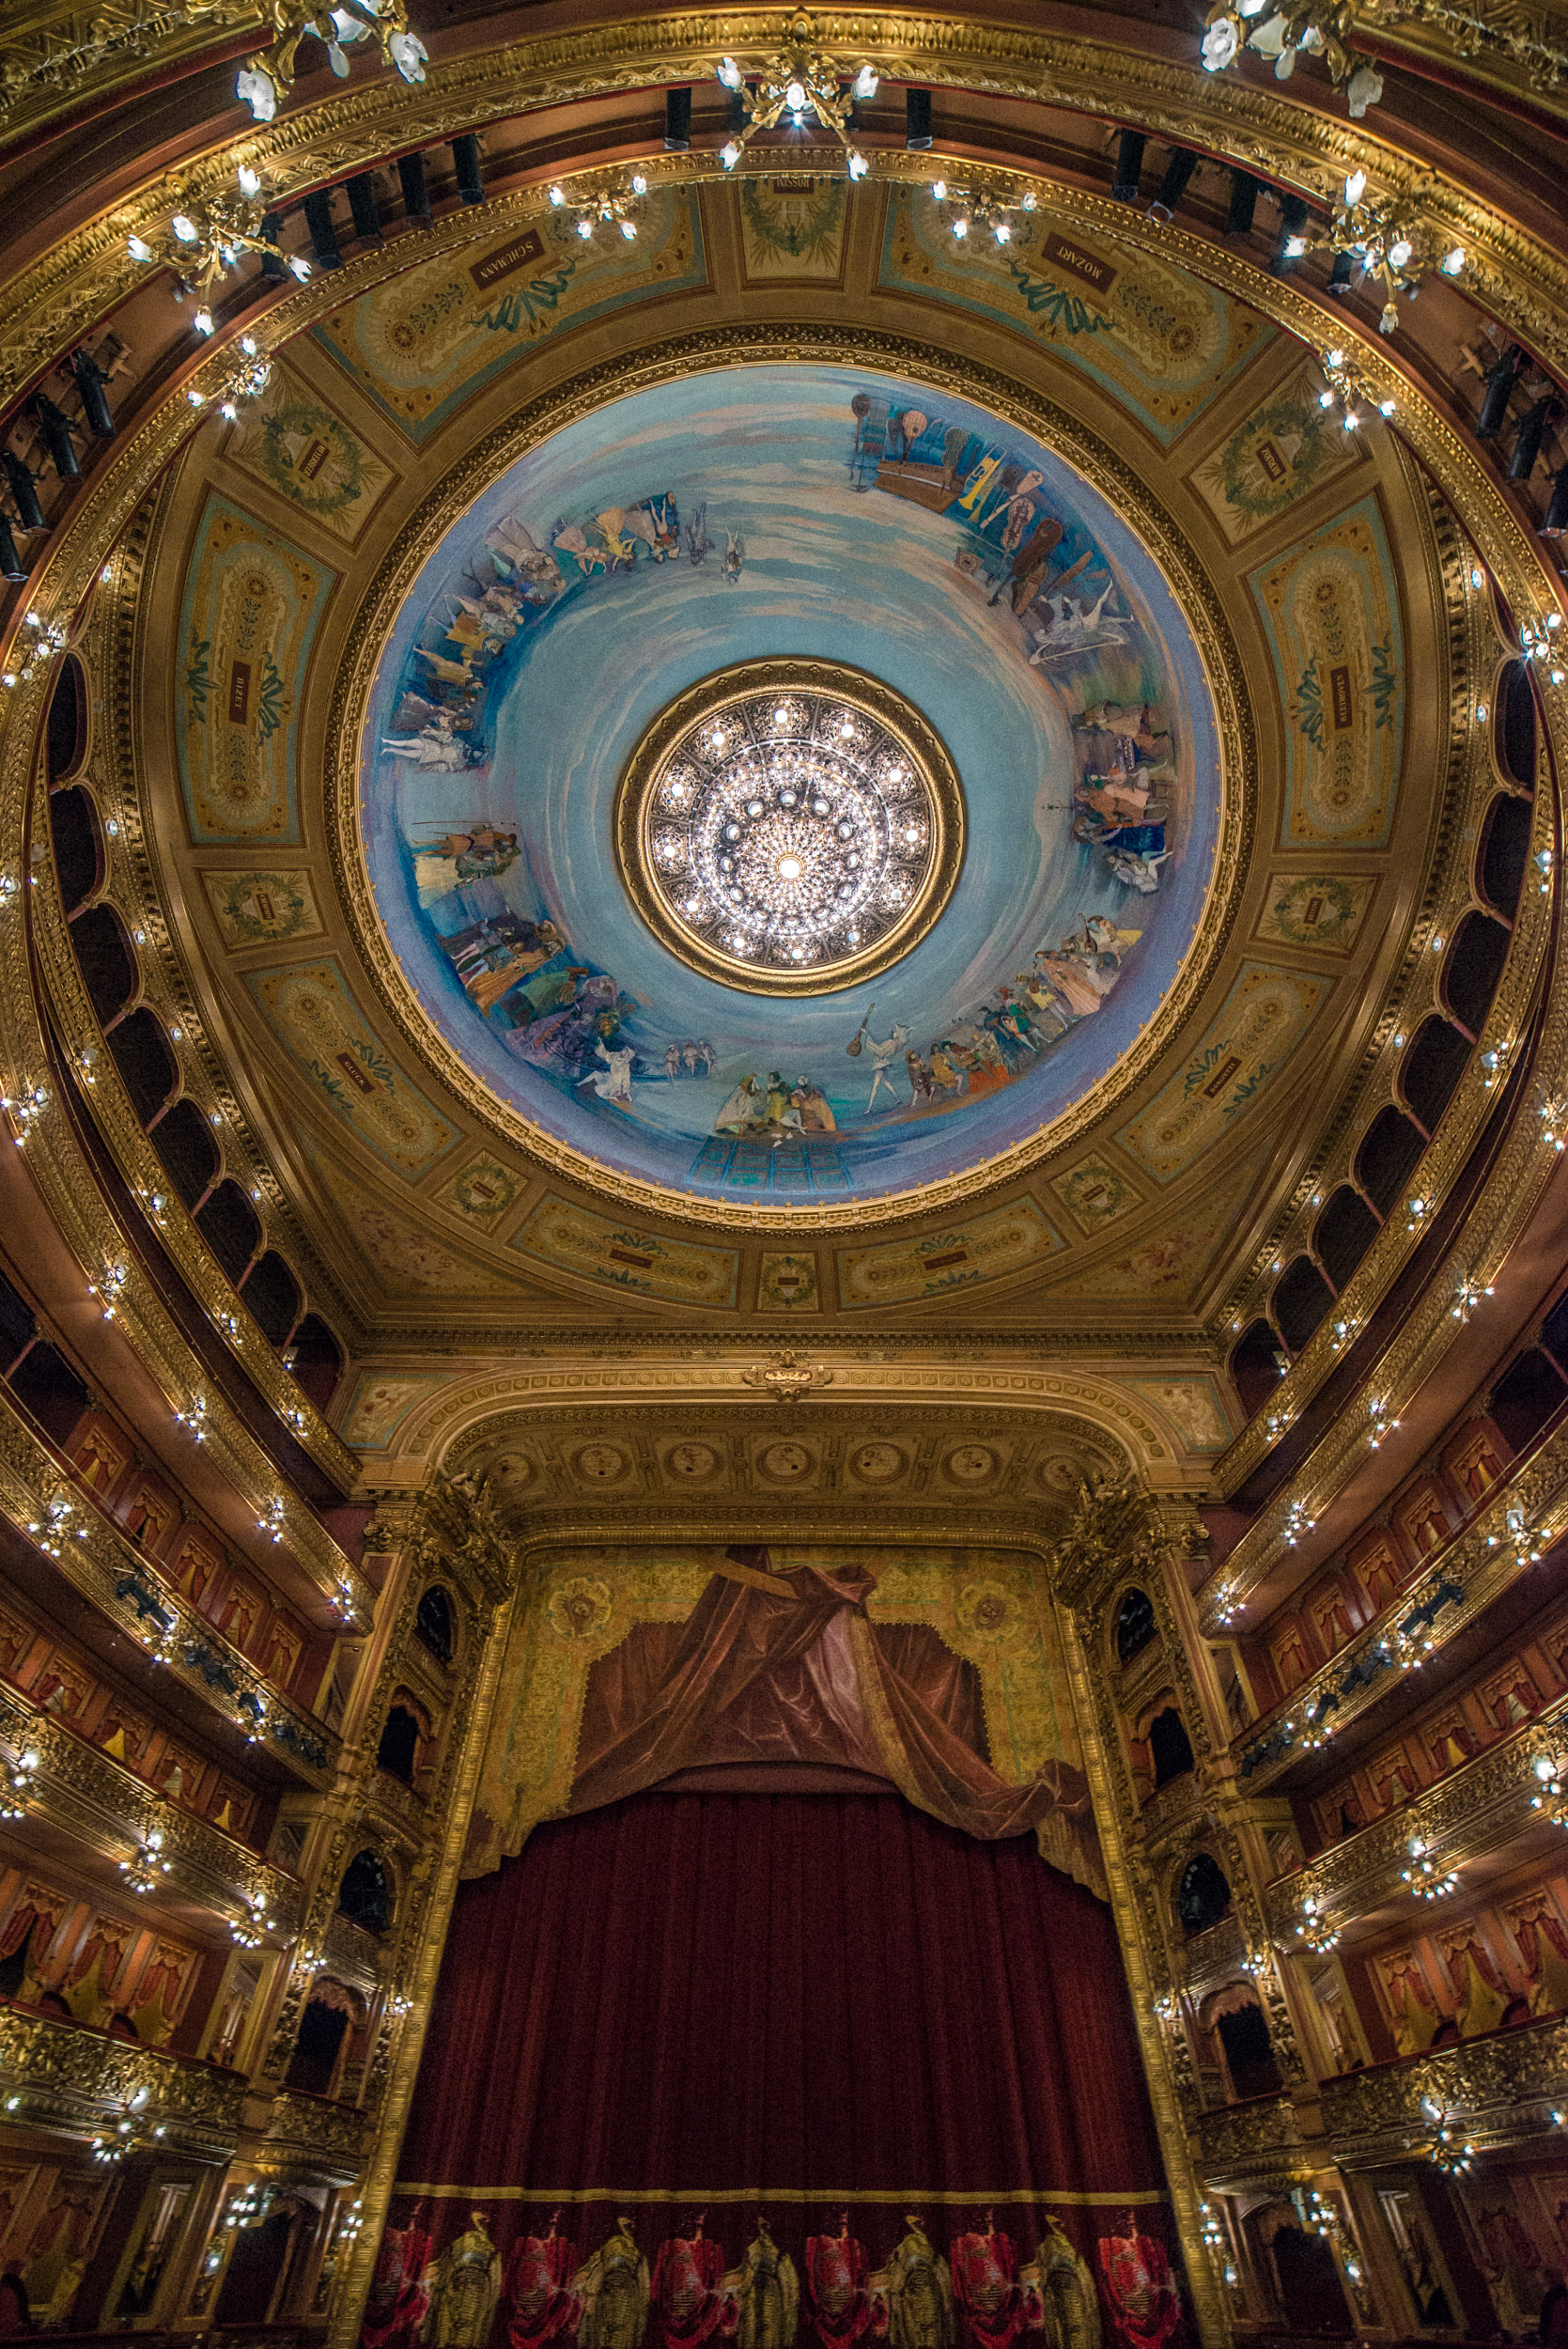 Teatro Colon Ceiling